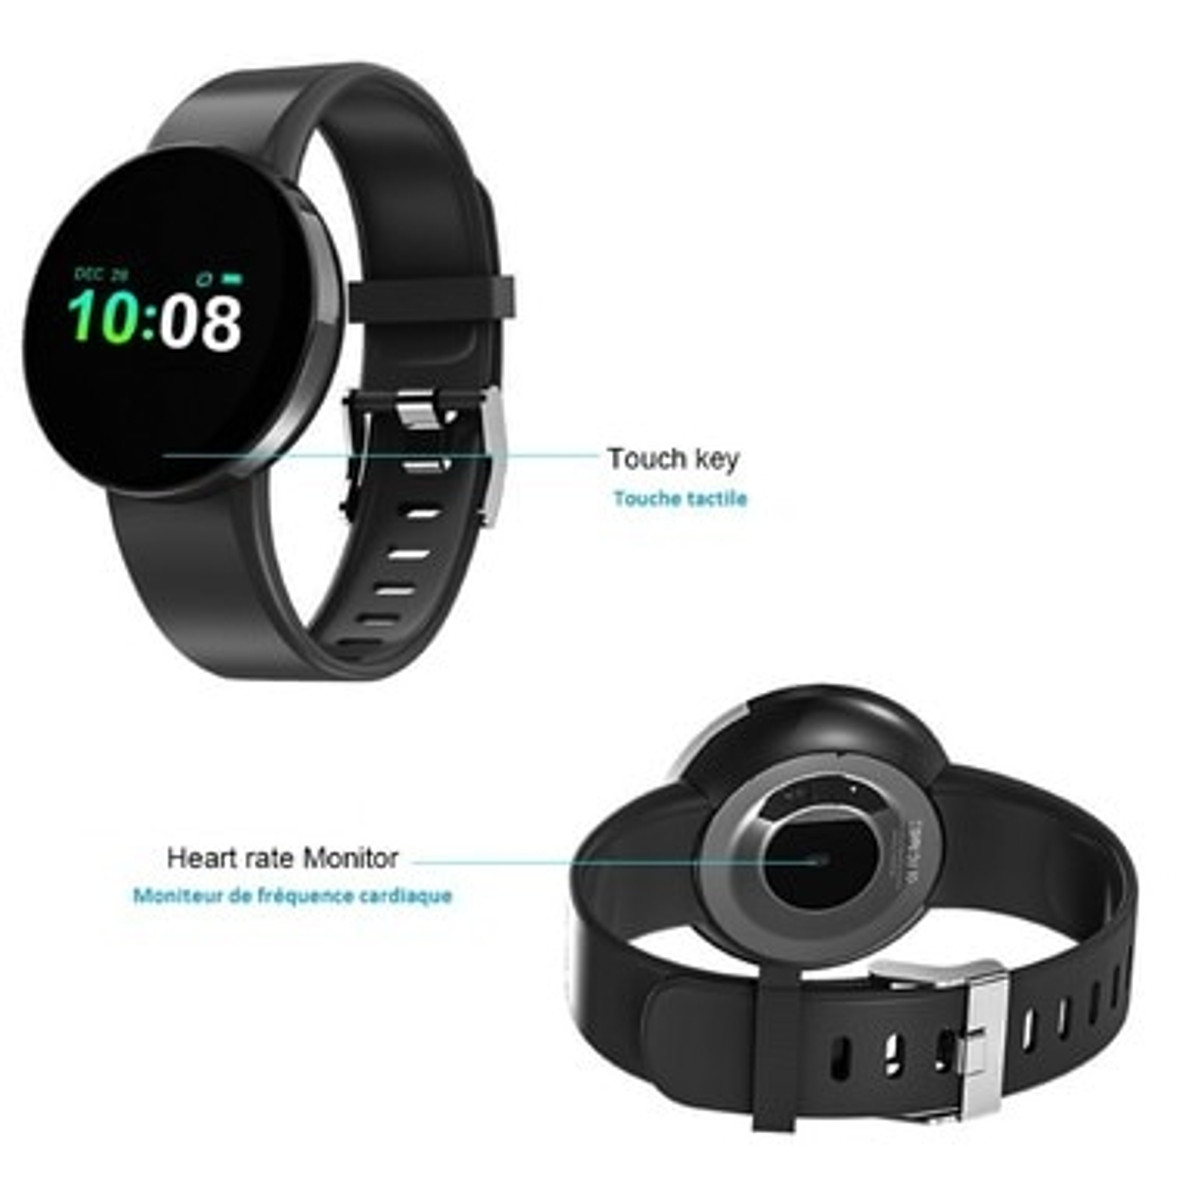 Multi-Function Compatible iOS & ANDROID GPD Watch WAC 58